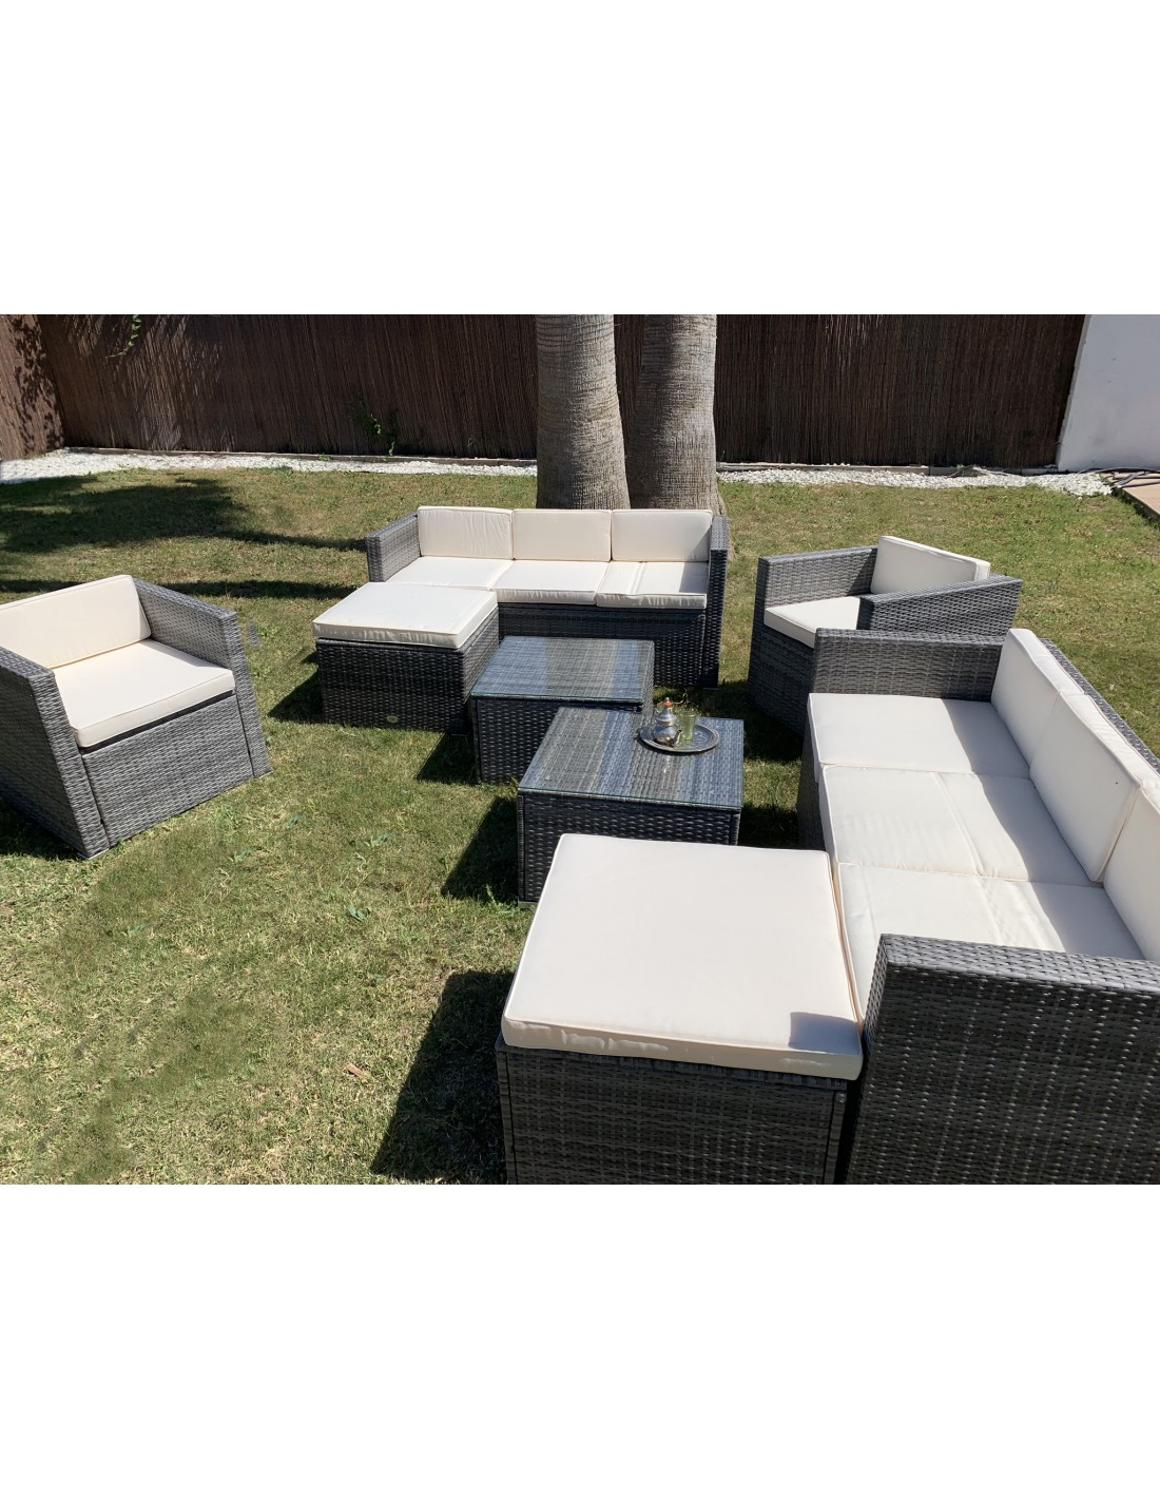 Conjunto De Sofas Terrace. The Angels Deluxe. Include 2 Three Seater Sofa, 2 Armchairs, 2 Stool Seating And 2 Coffee Tables.